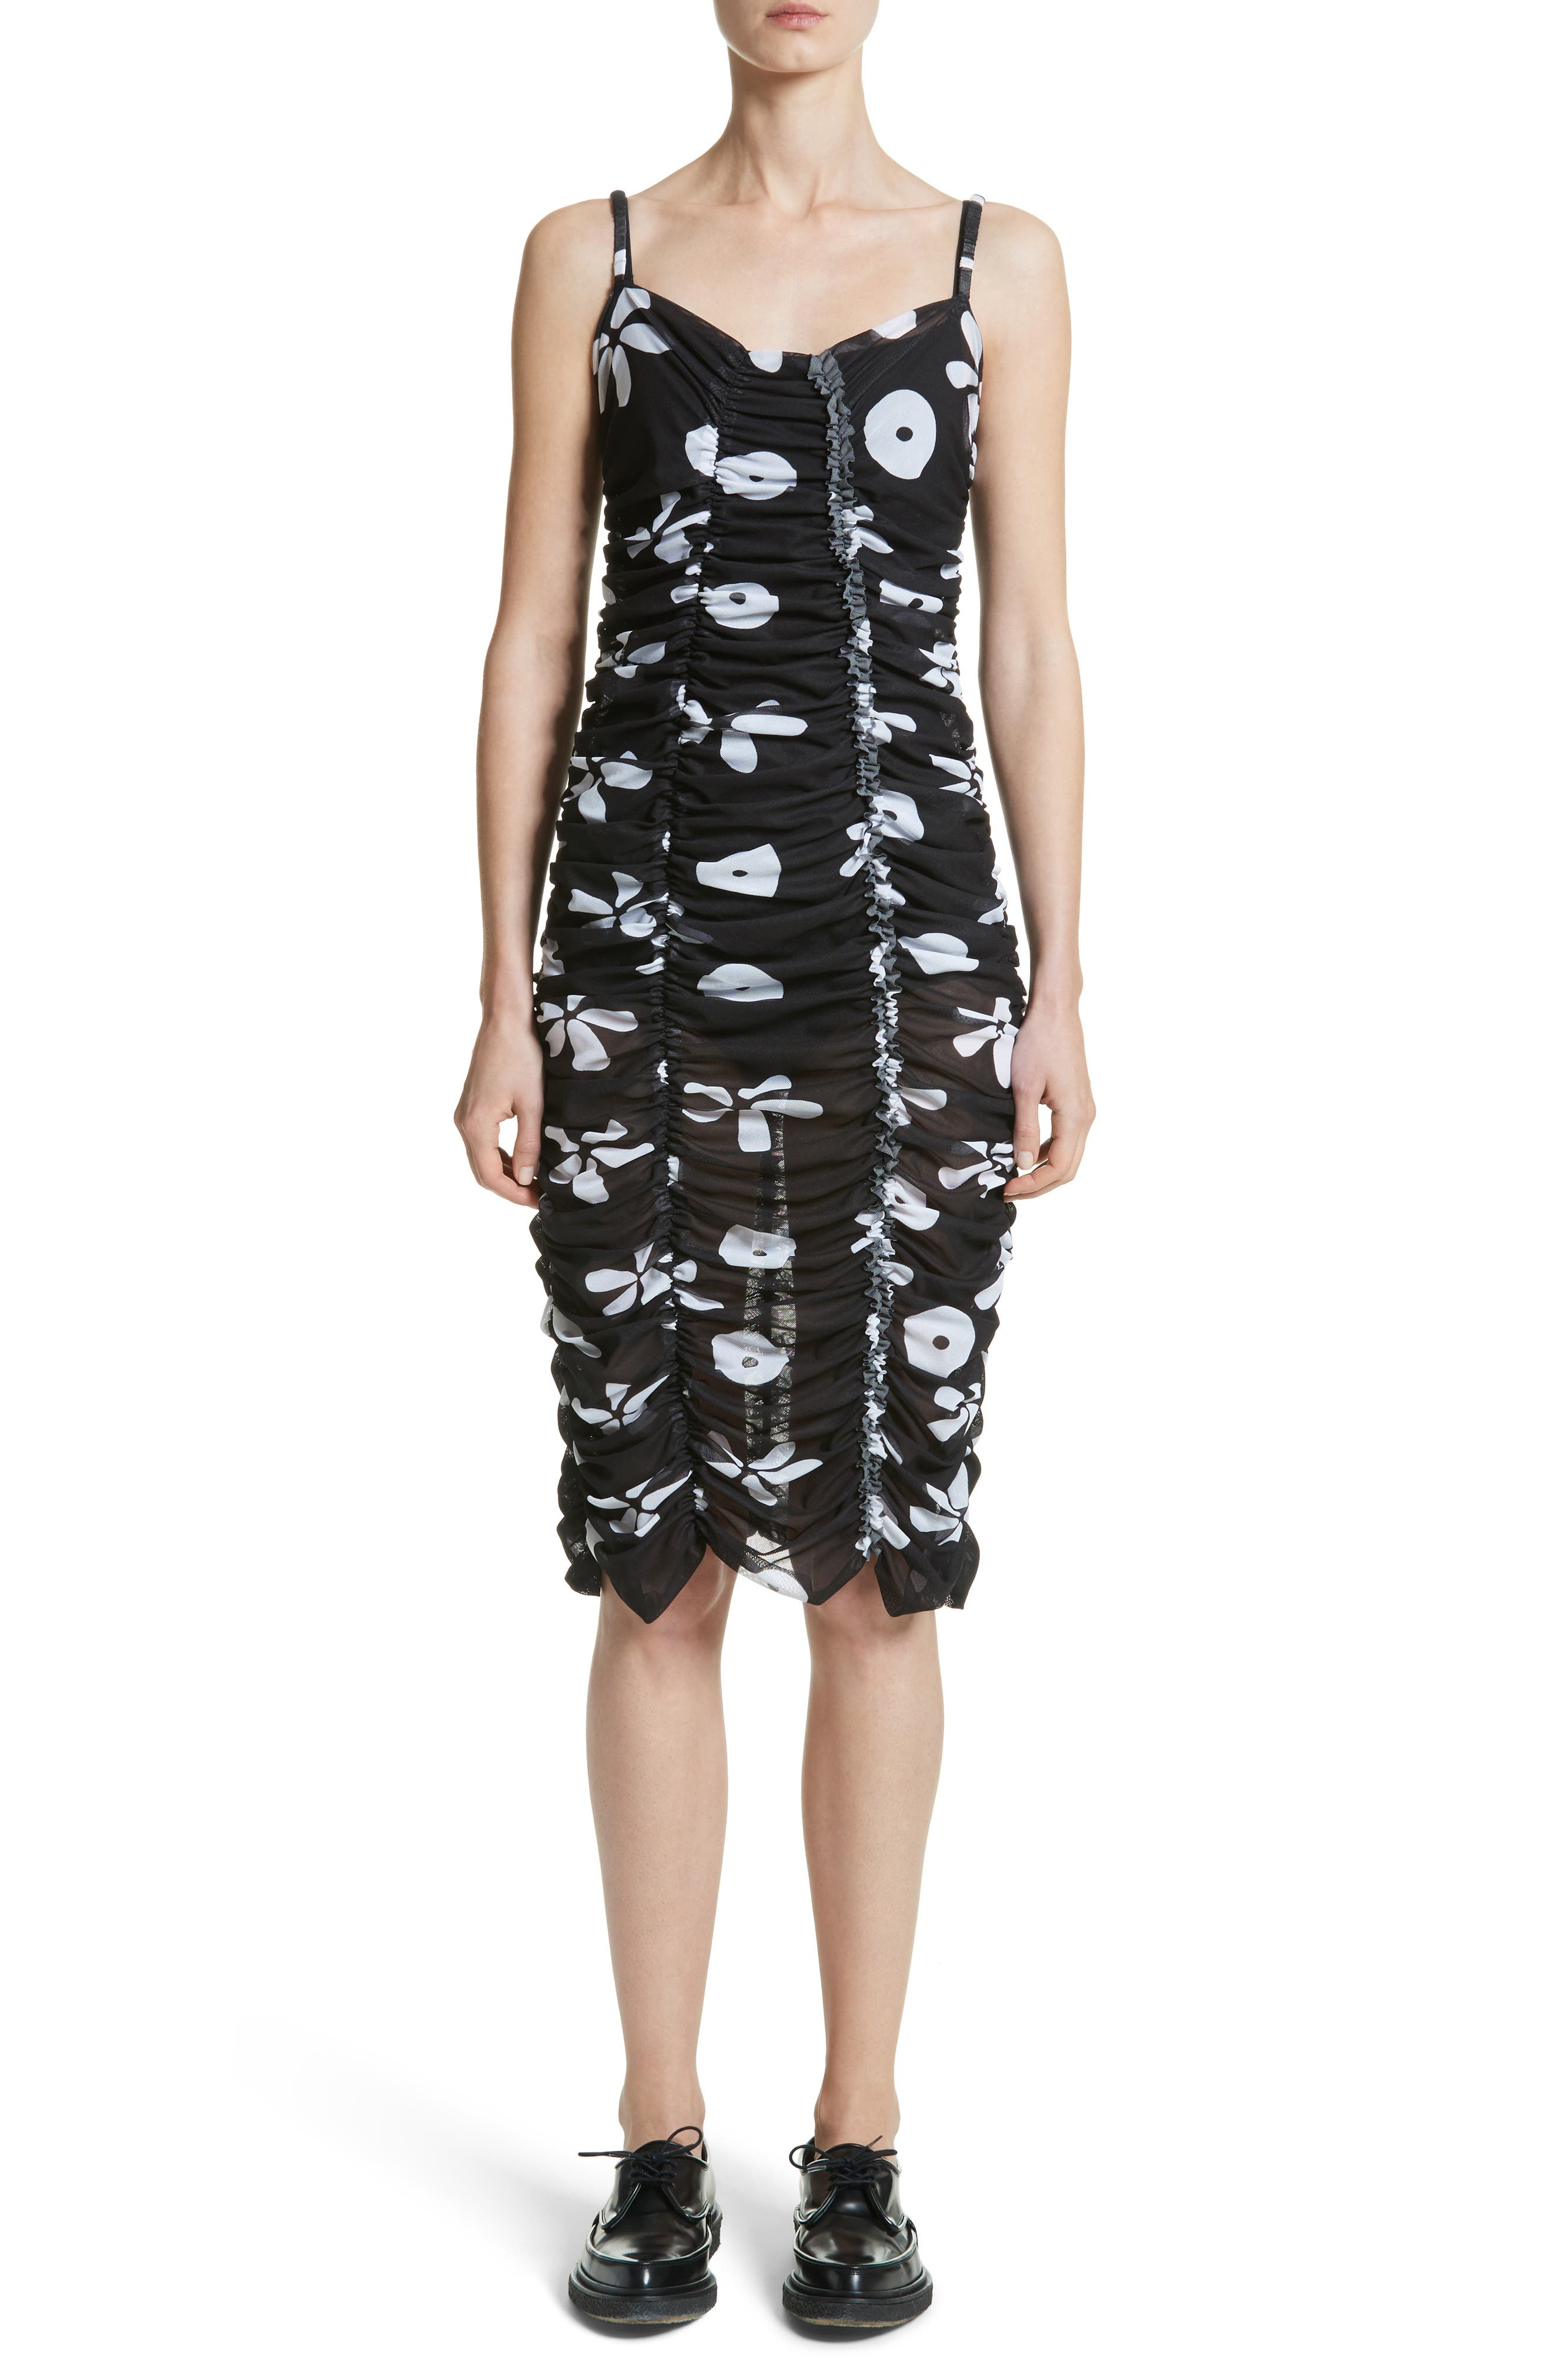 Alternate Image 1 Selected - Molly Goddard Scarlett Floral Print Mesh Dress